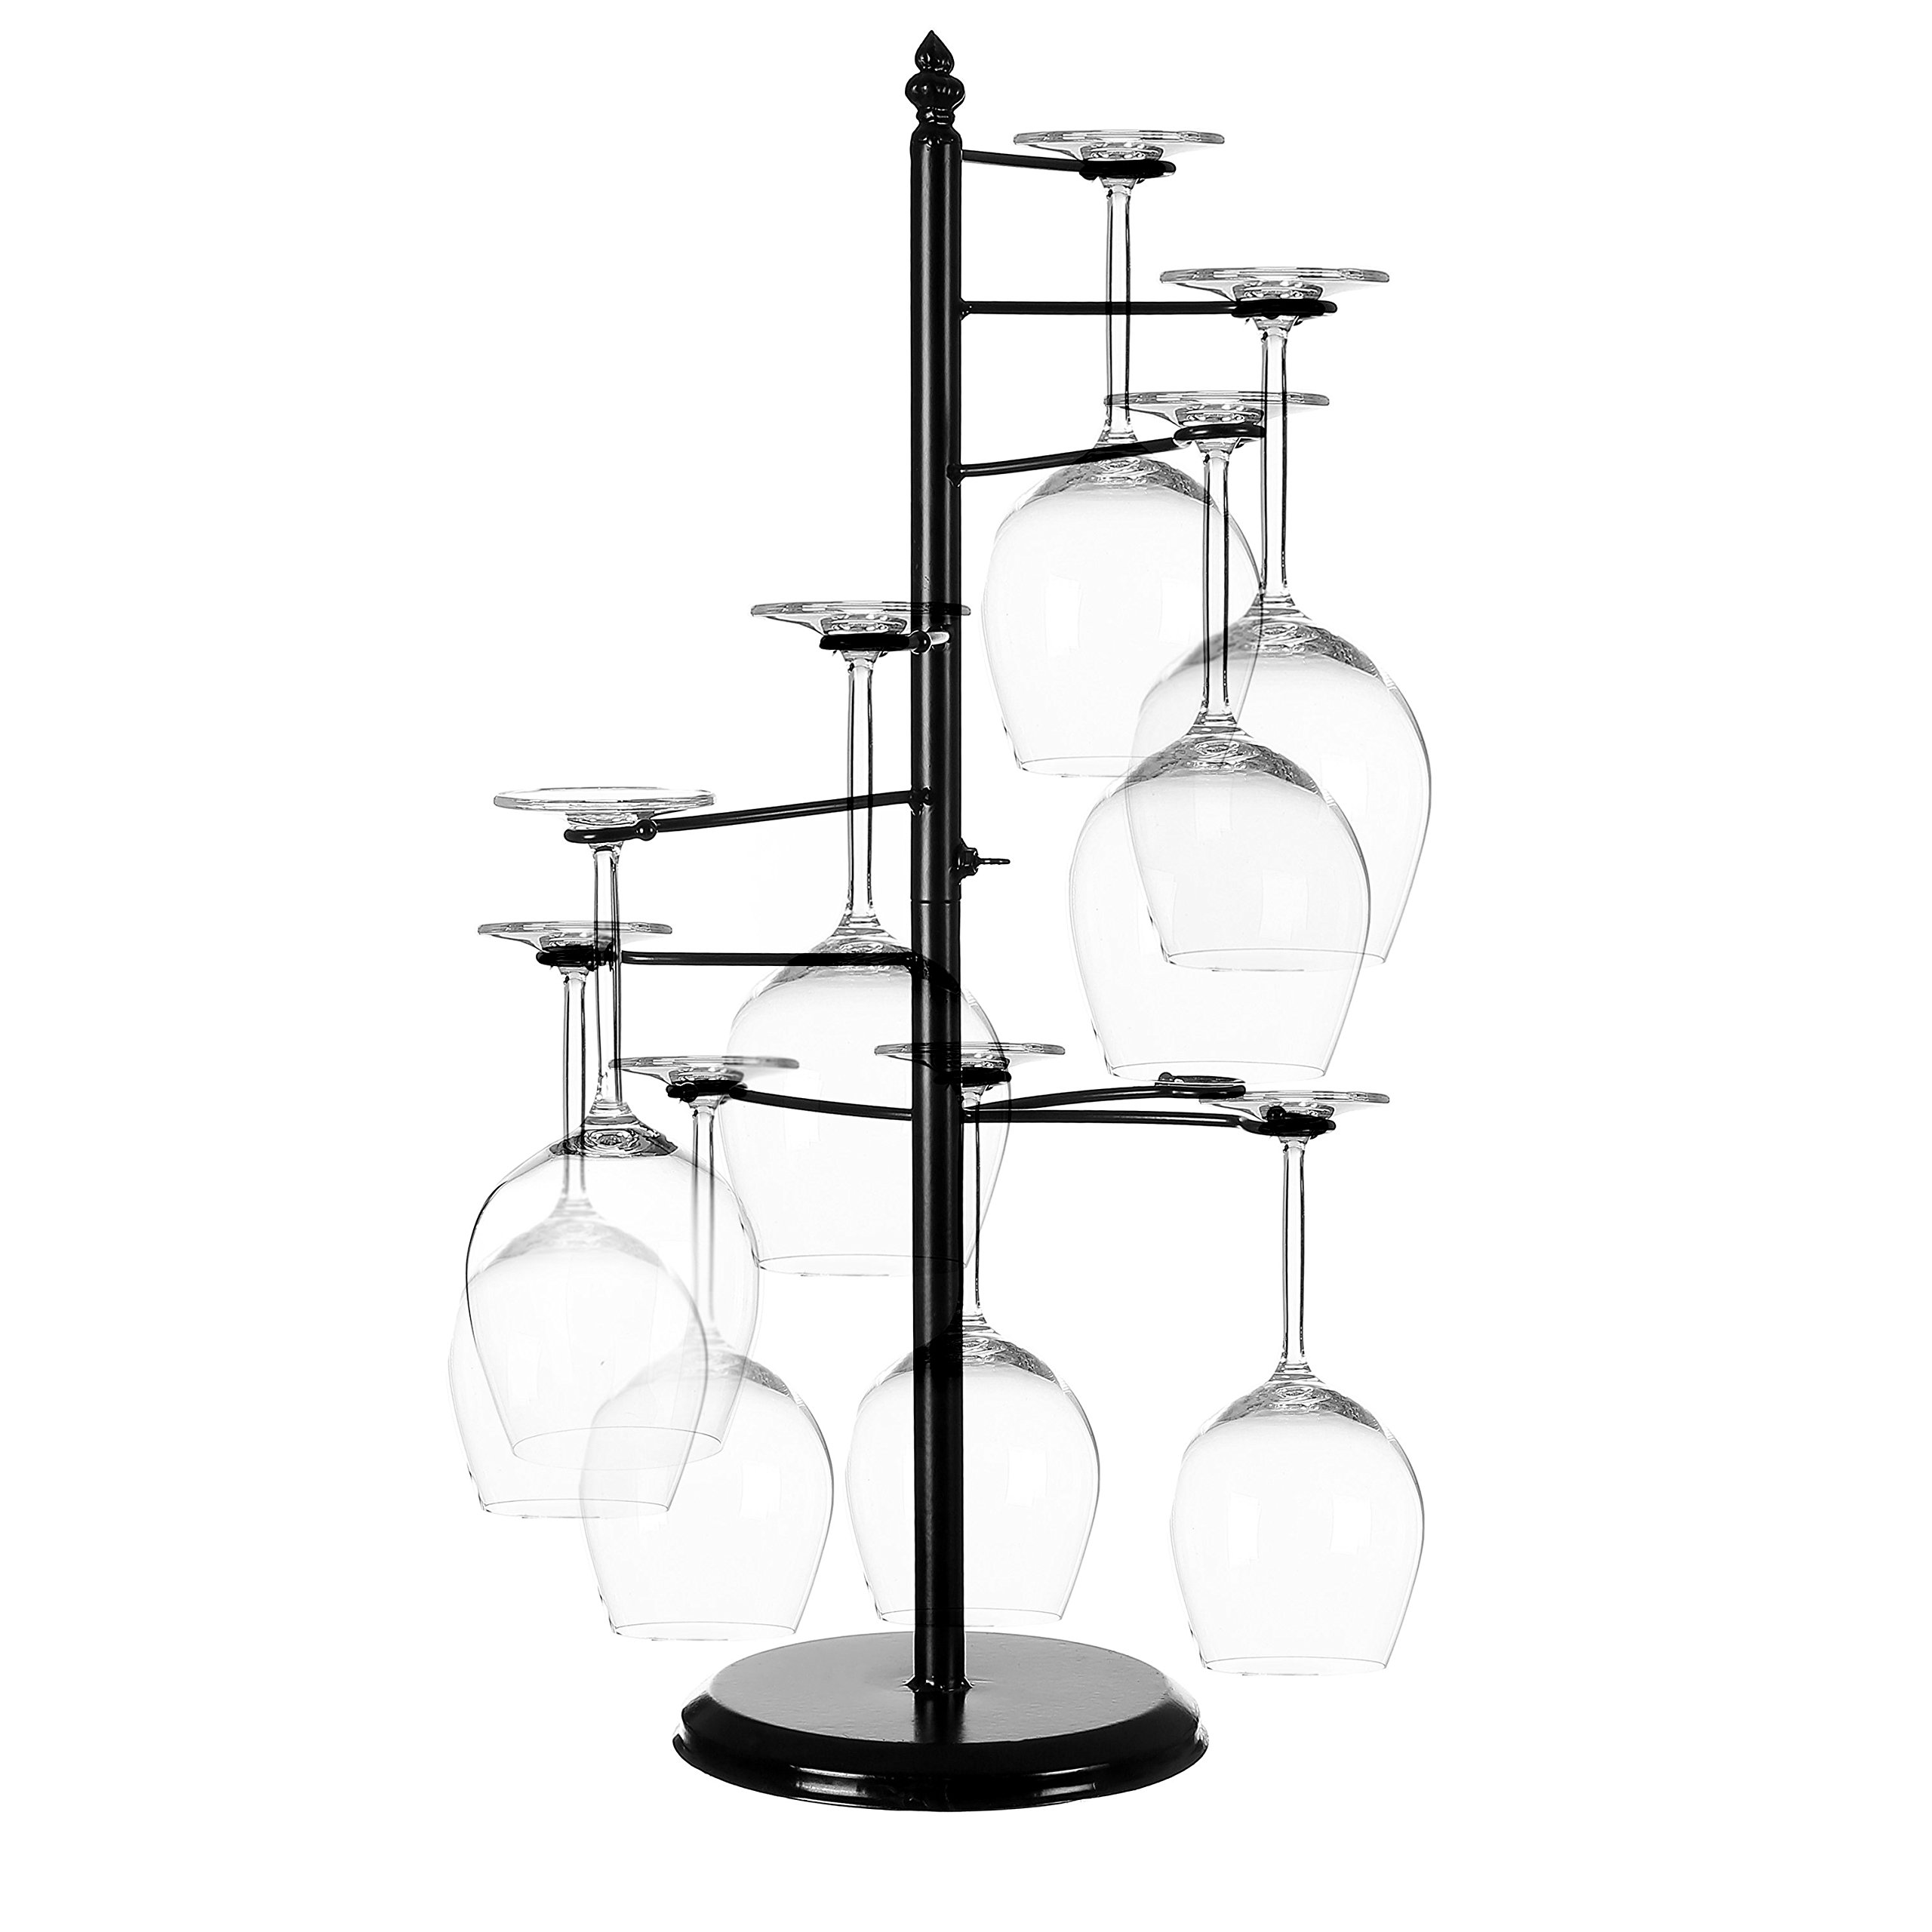 MyGift Freestanding Tabletop Stemware Rack / Spiraling 10 Wine Glass Holder, Black